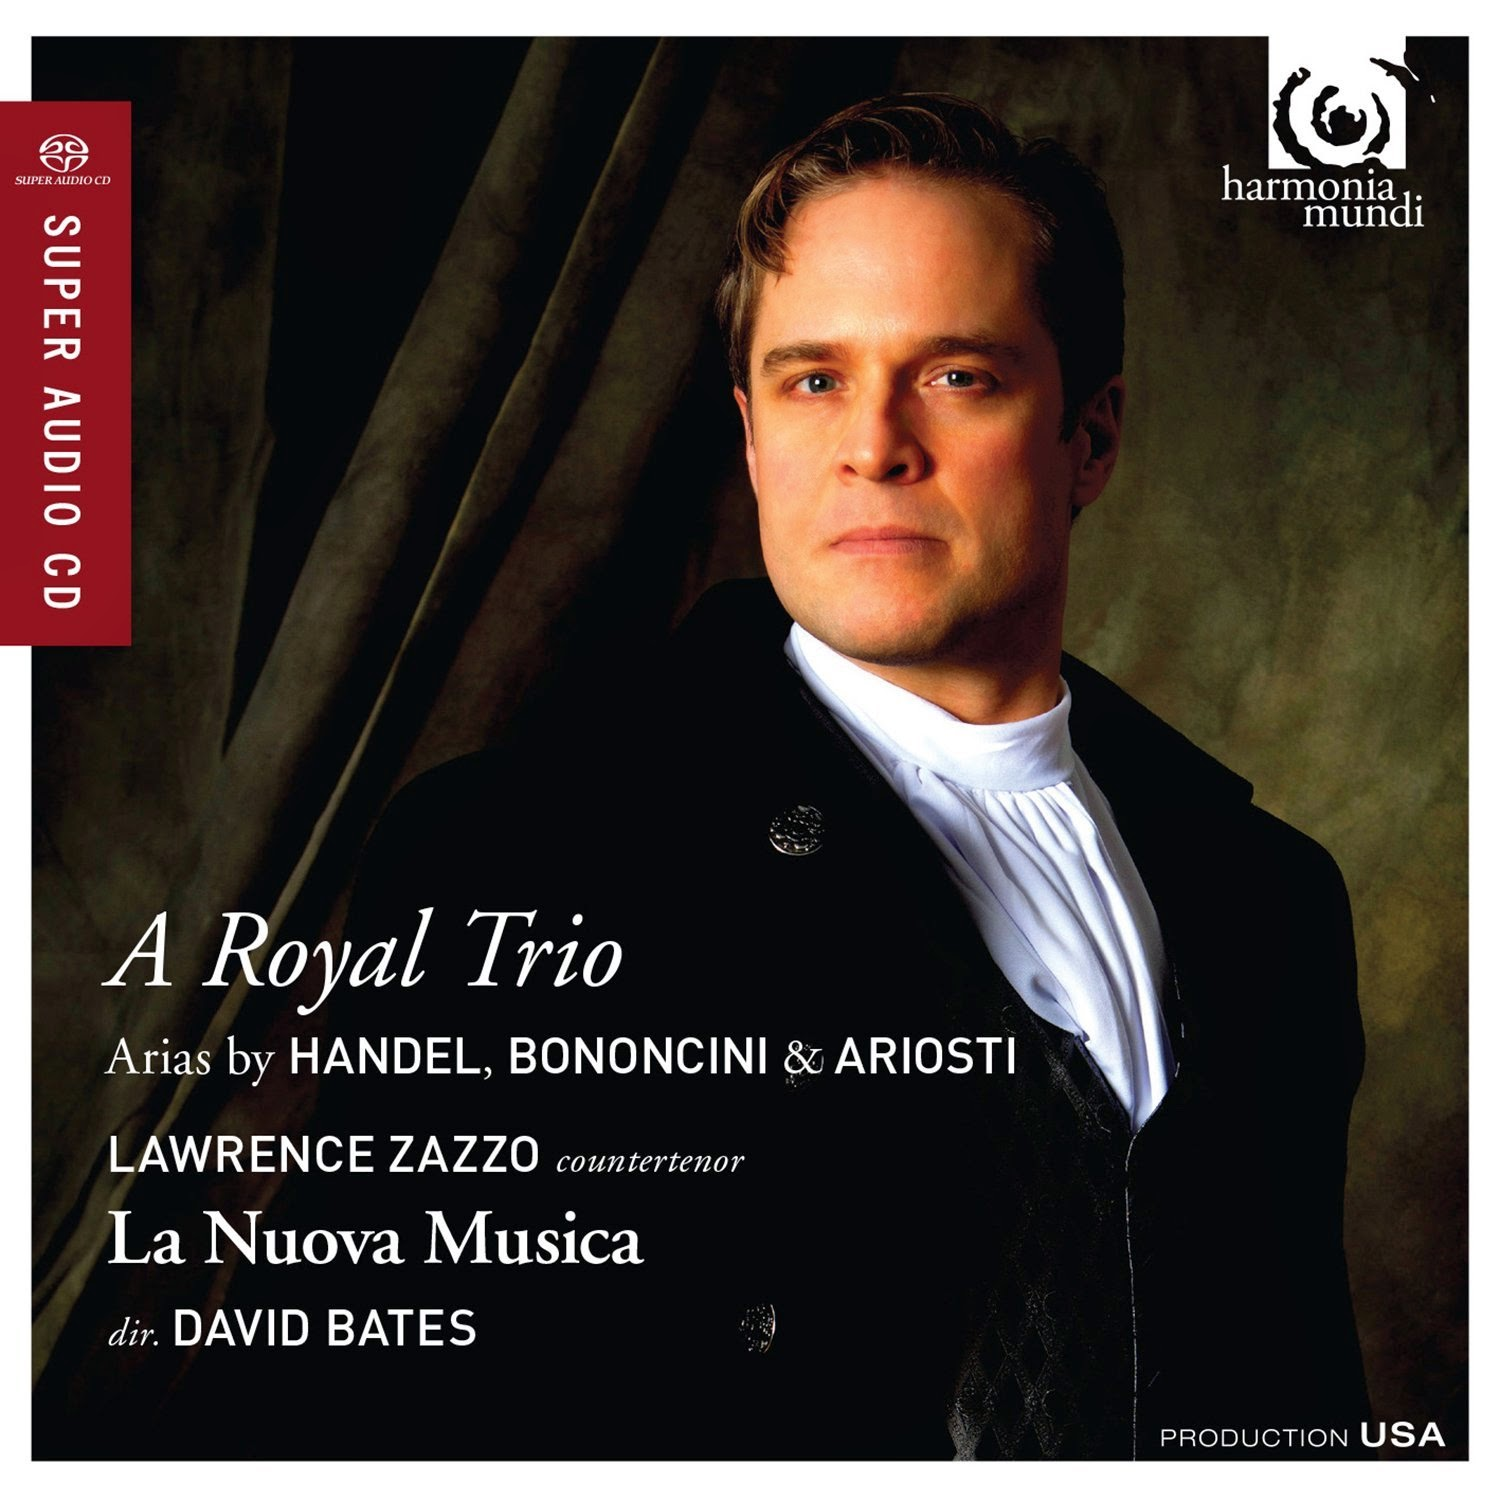 A Royal Trio - Lawrence Zazzo, La Nuova Musica, David Bates